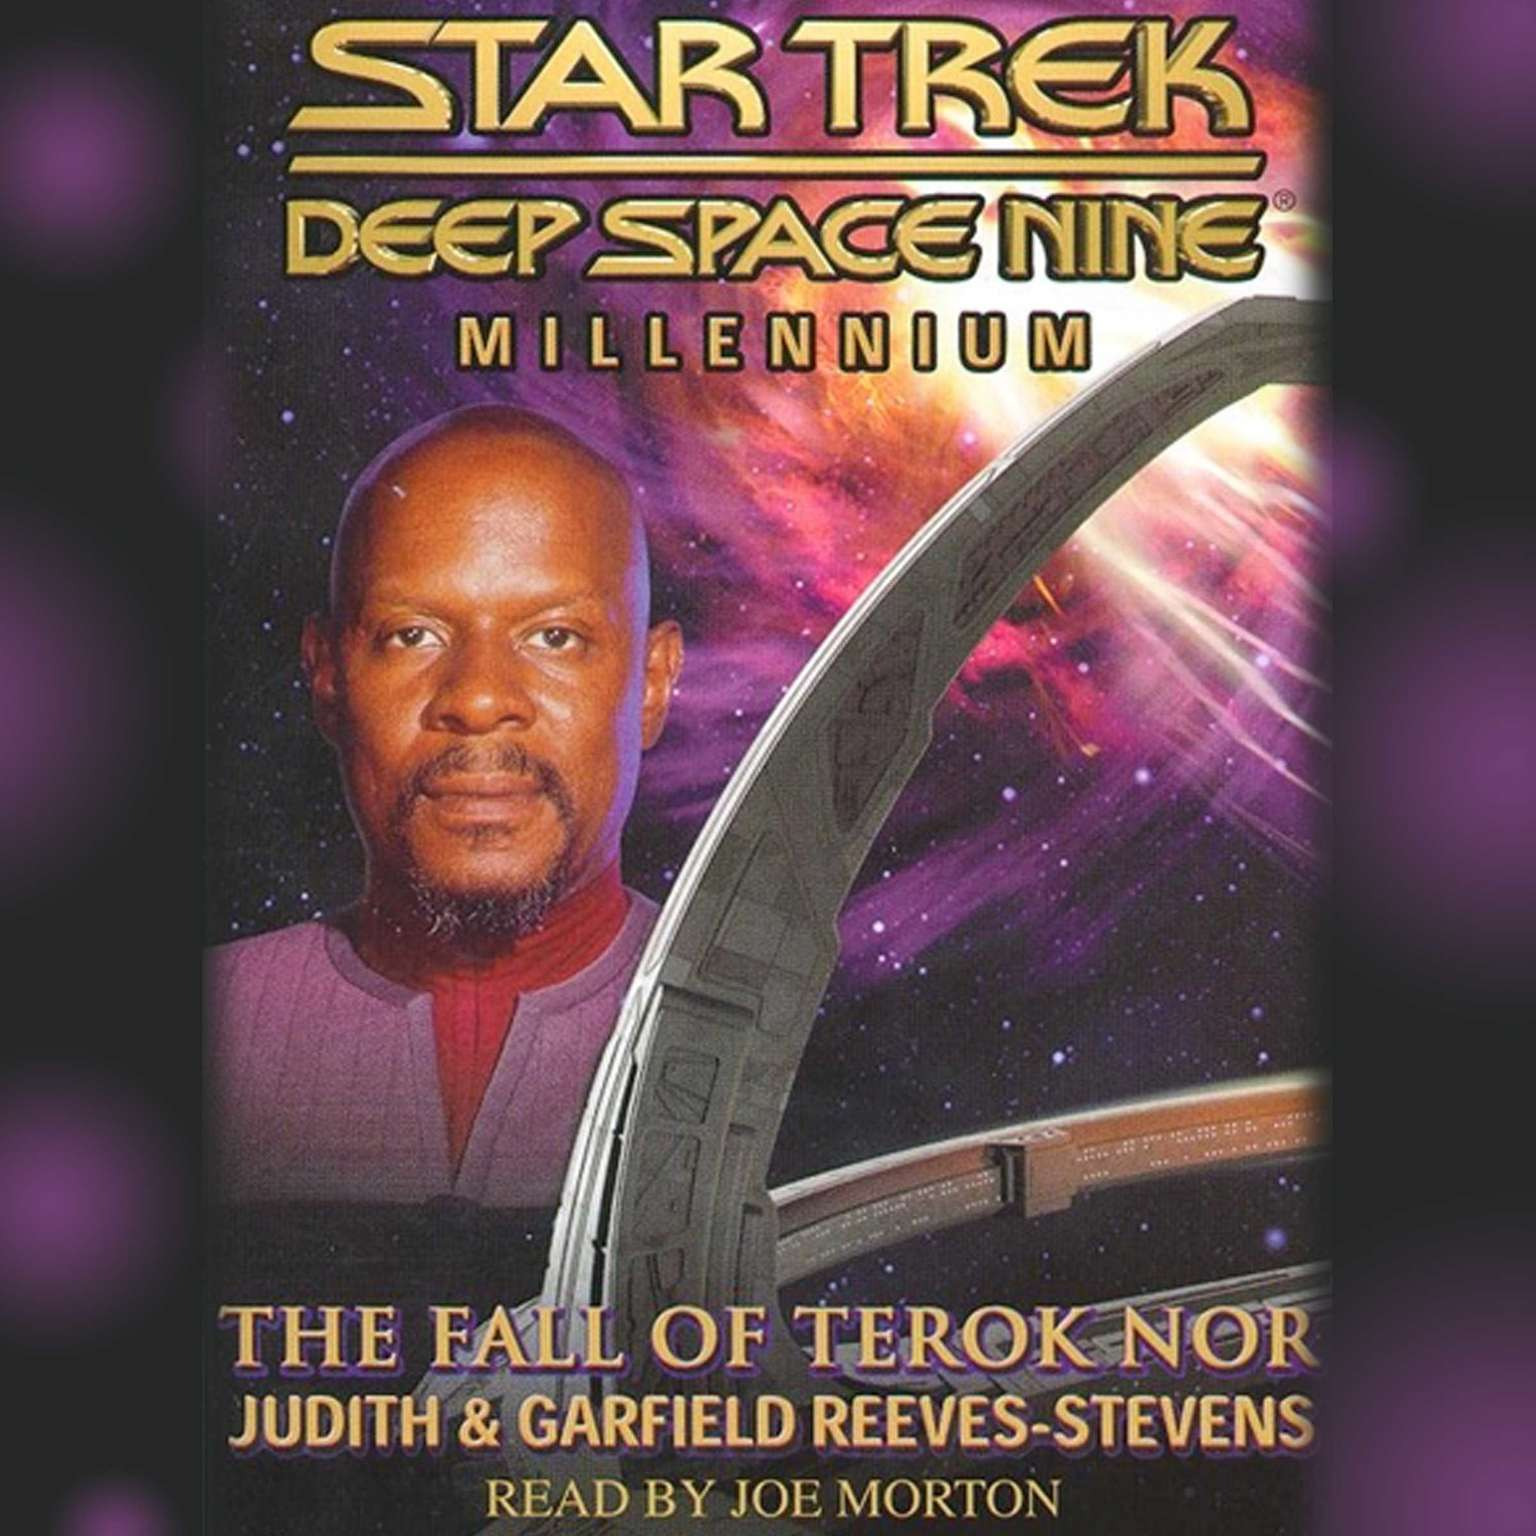 Printable Star Trek Deep Space Nine: Millenium Audiobook Cover Art